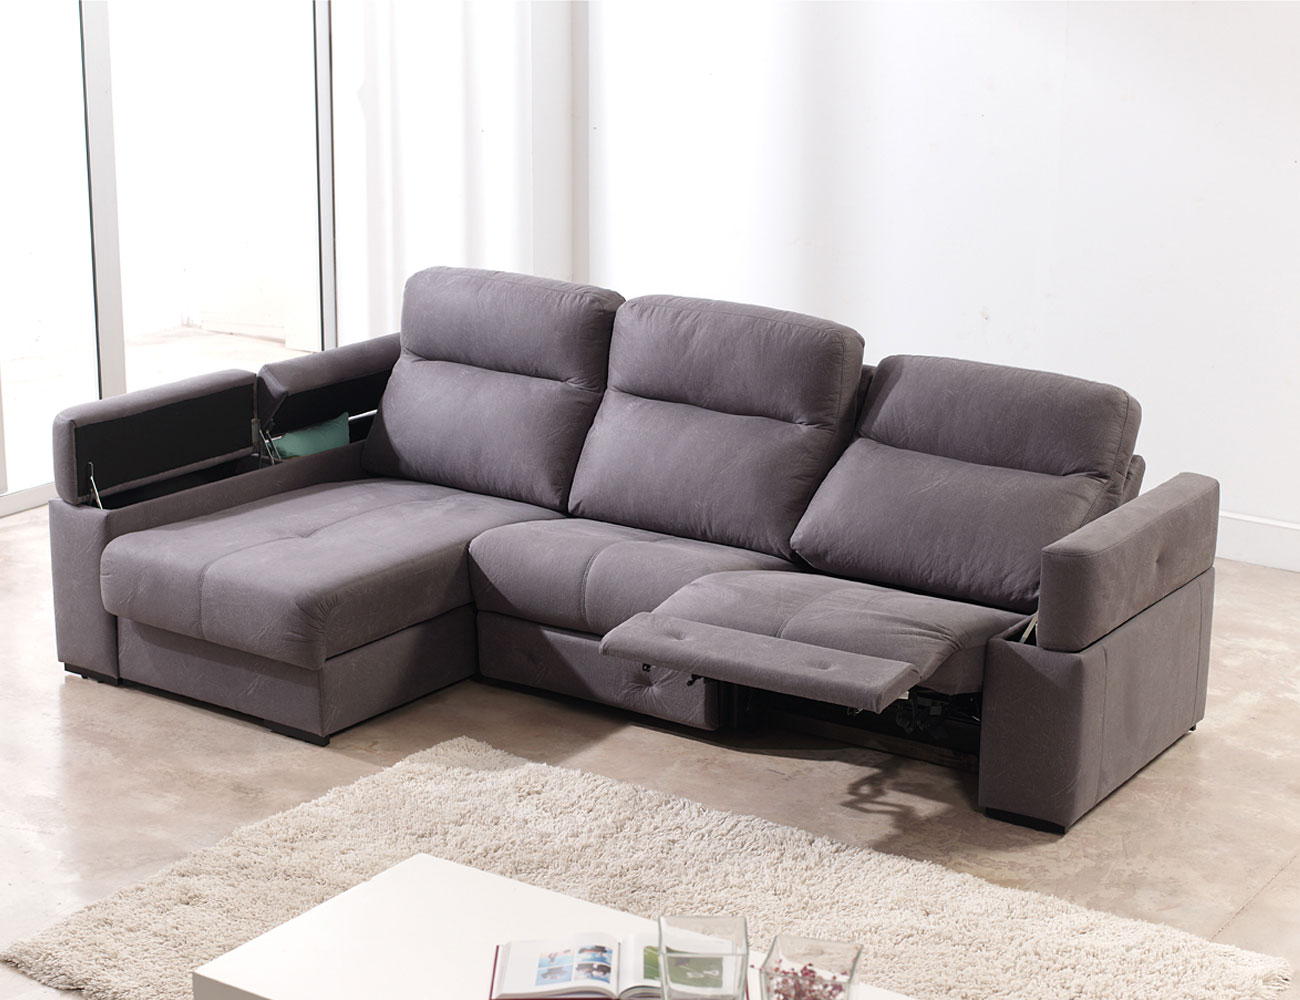 Sofa chaiselongue relax motor electrico 3 arcon 1